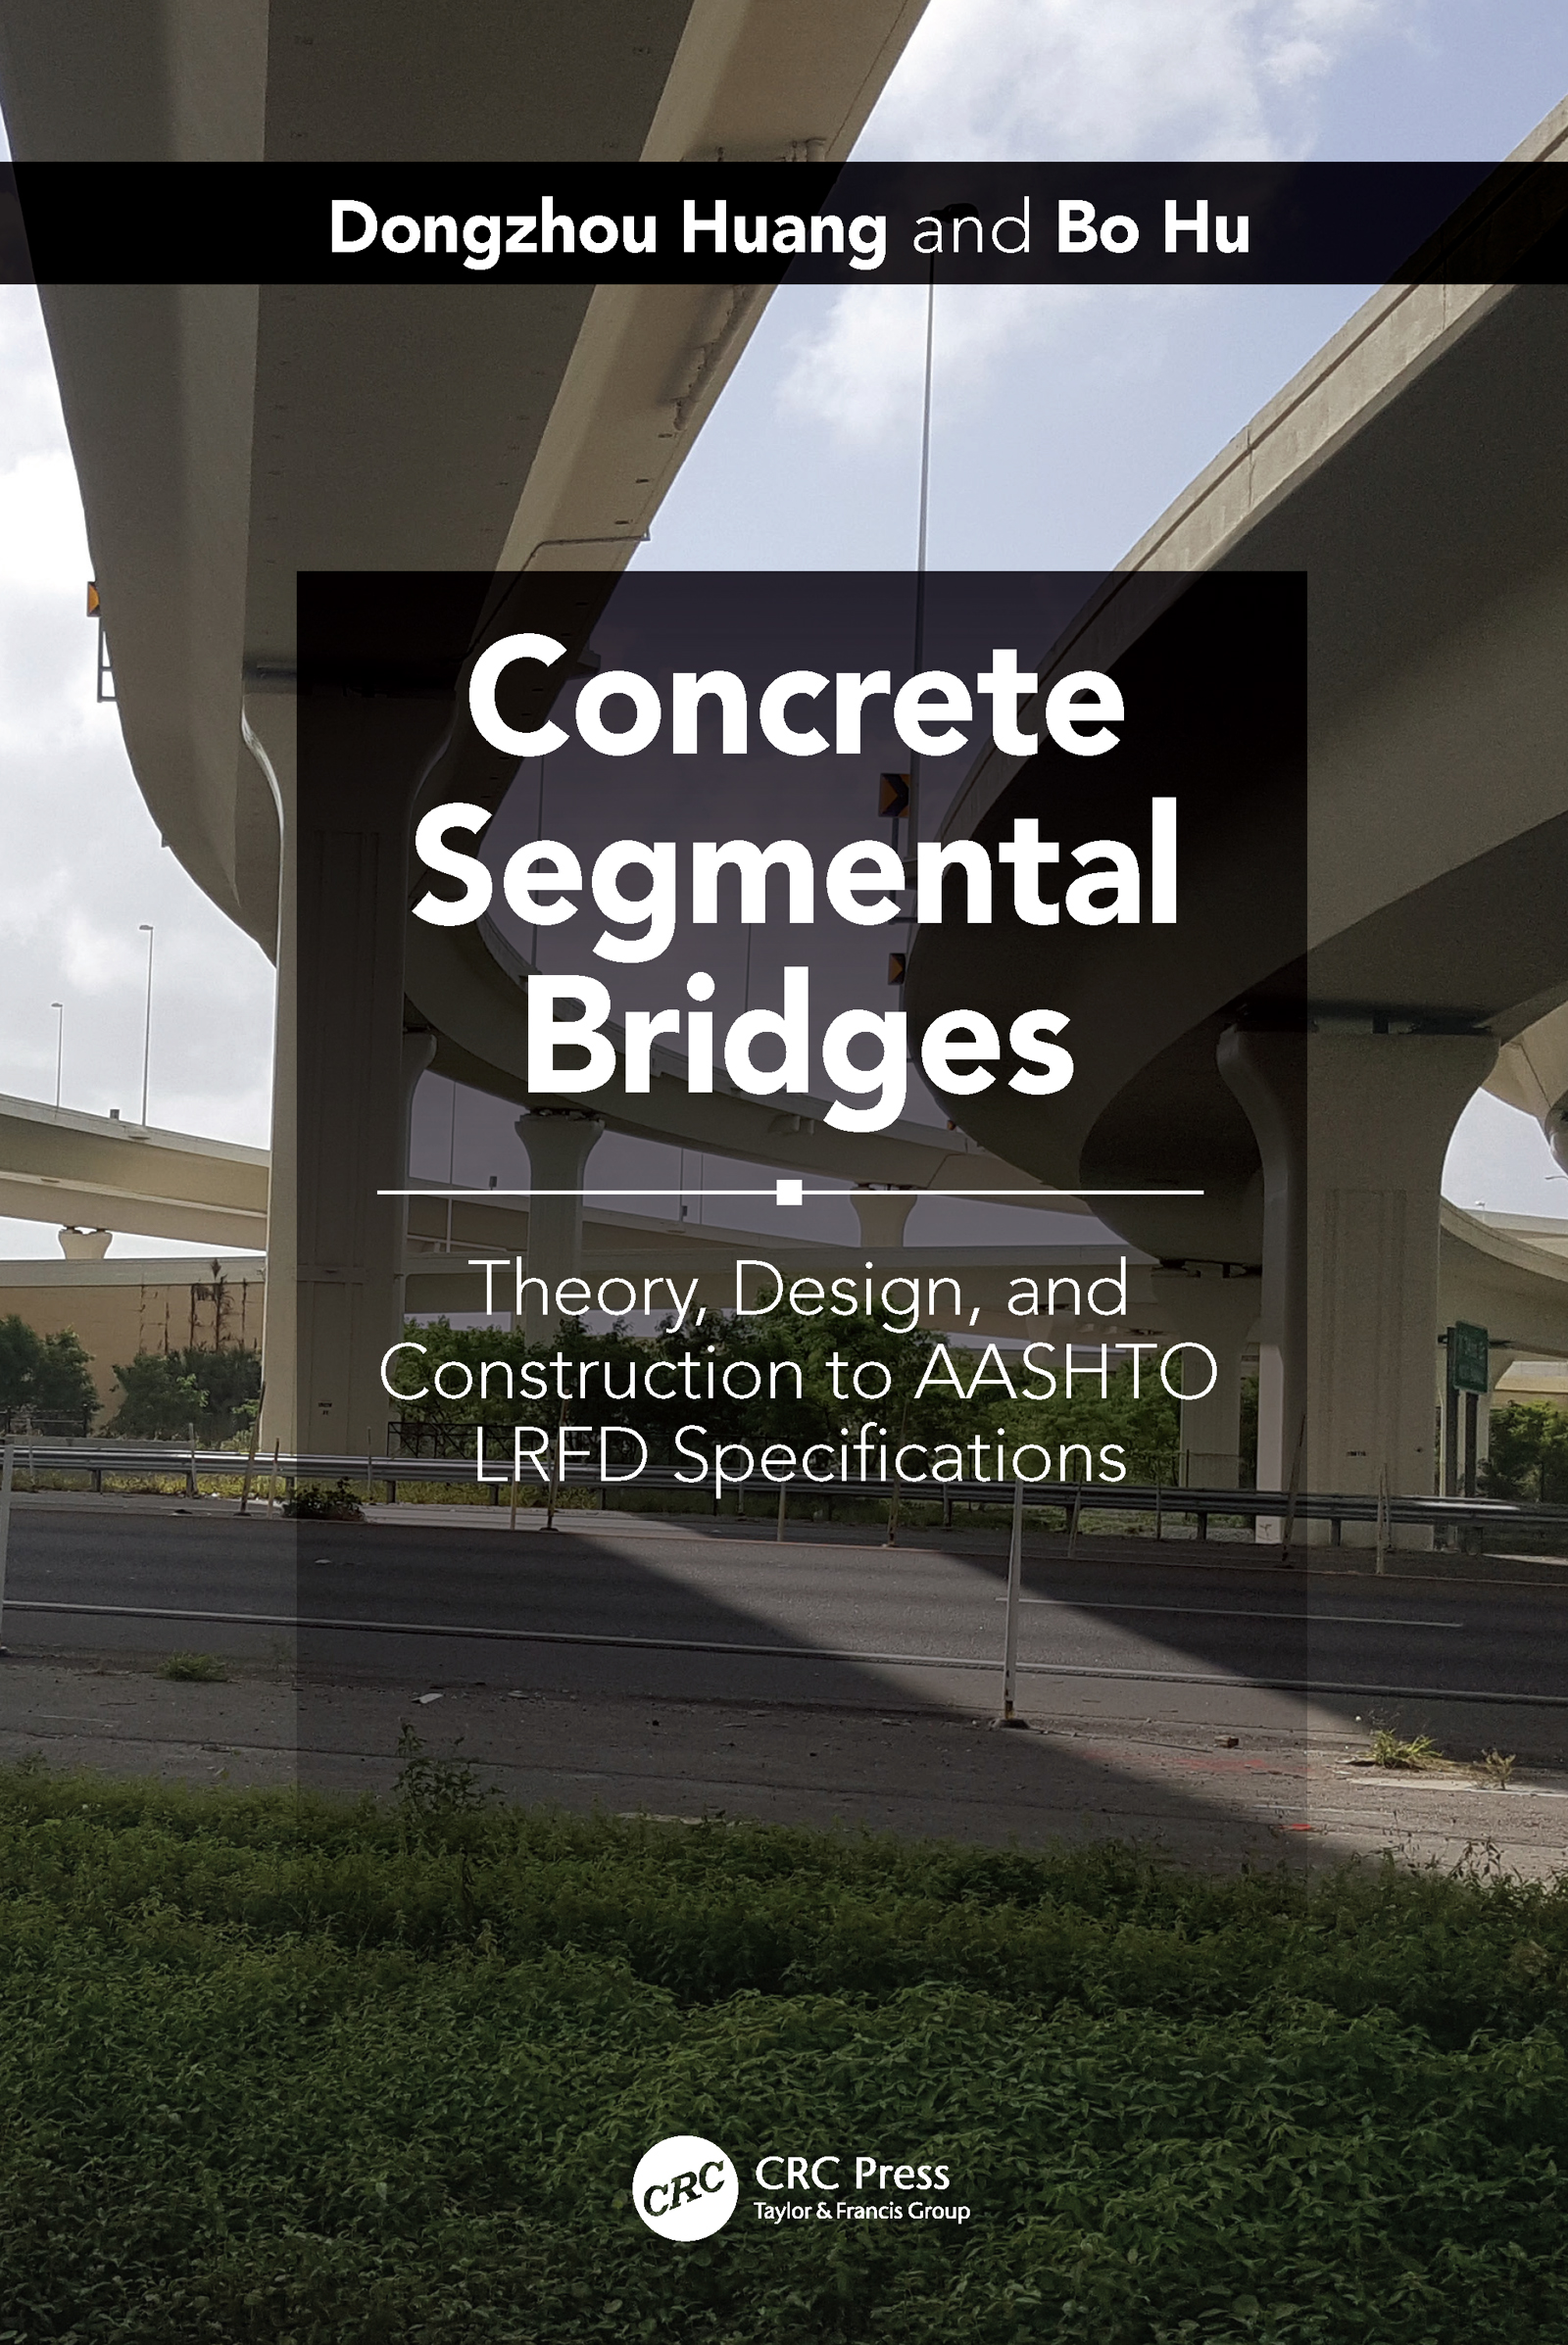 Concrete Segmental Bridges: Theory, Design, and Construction to AASHTO LRFD Specifications book cover